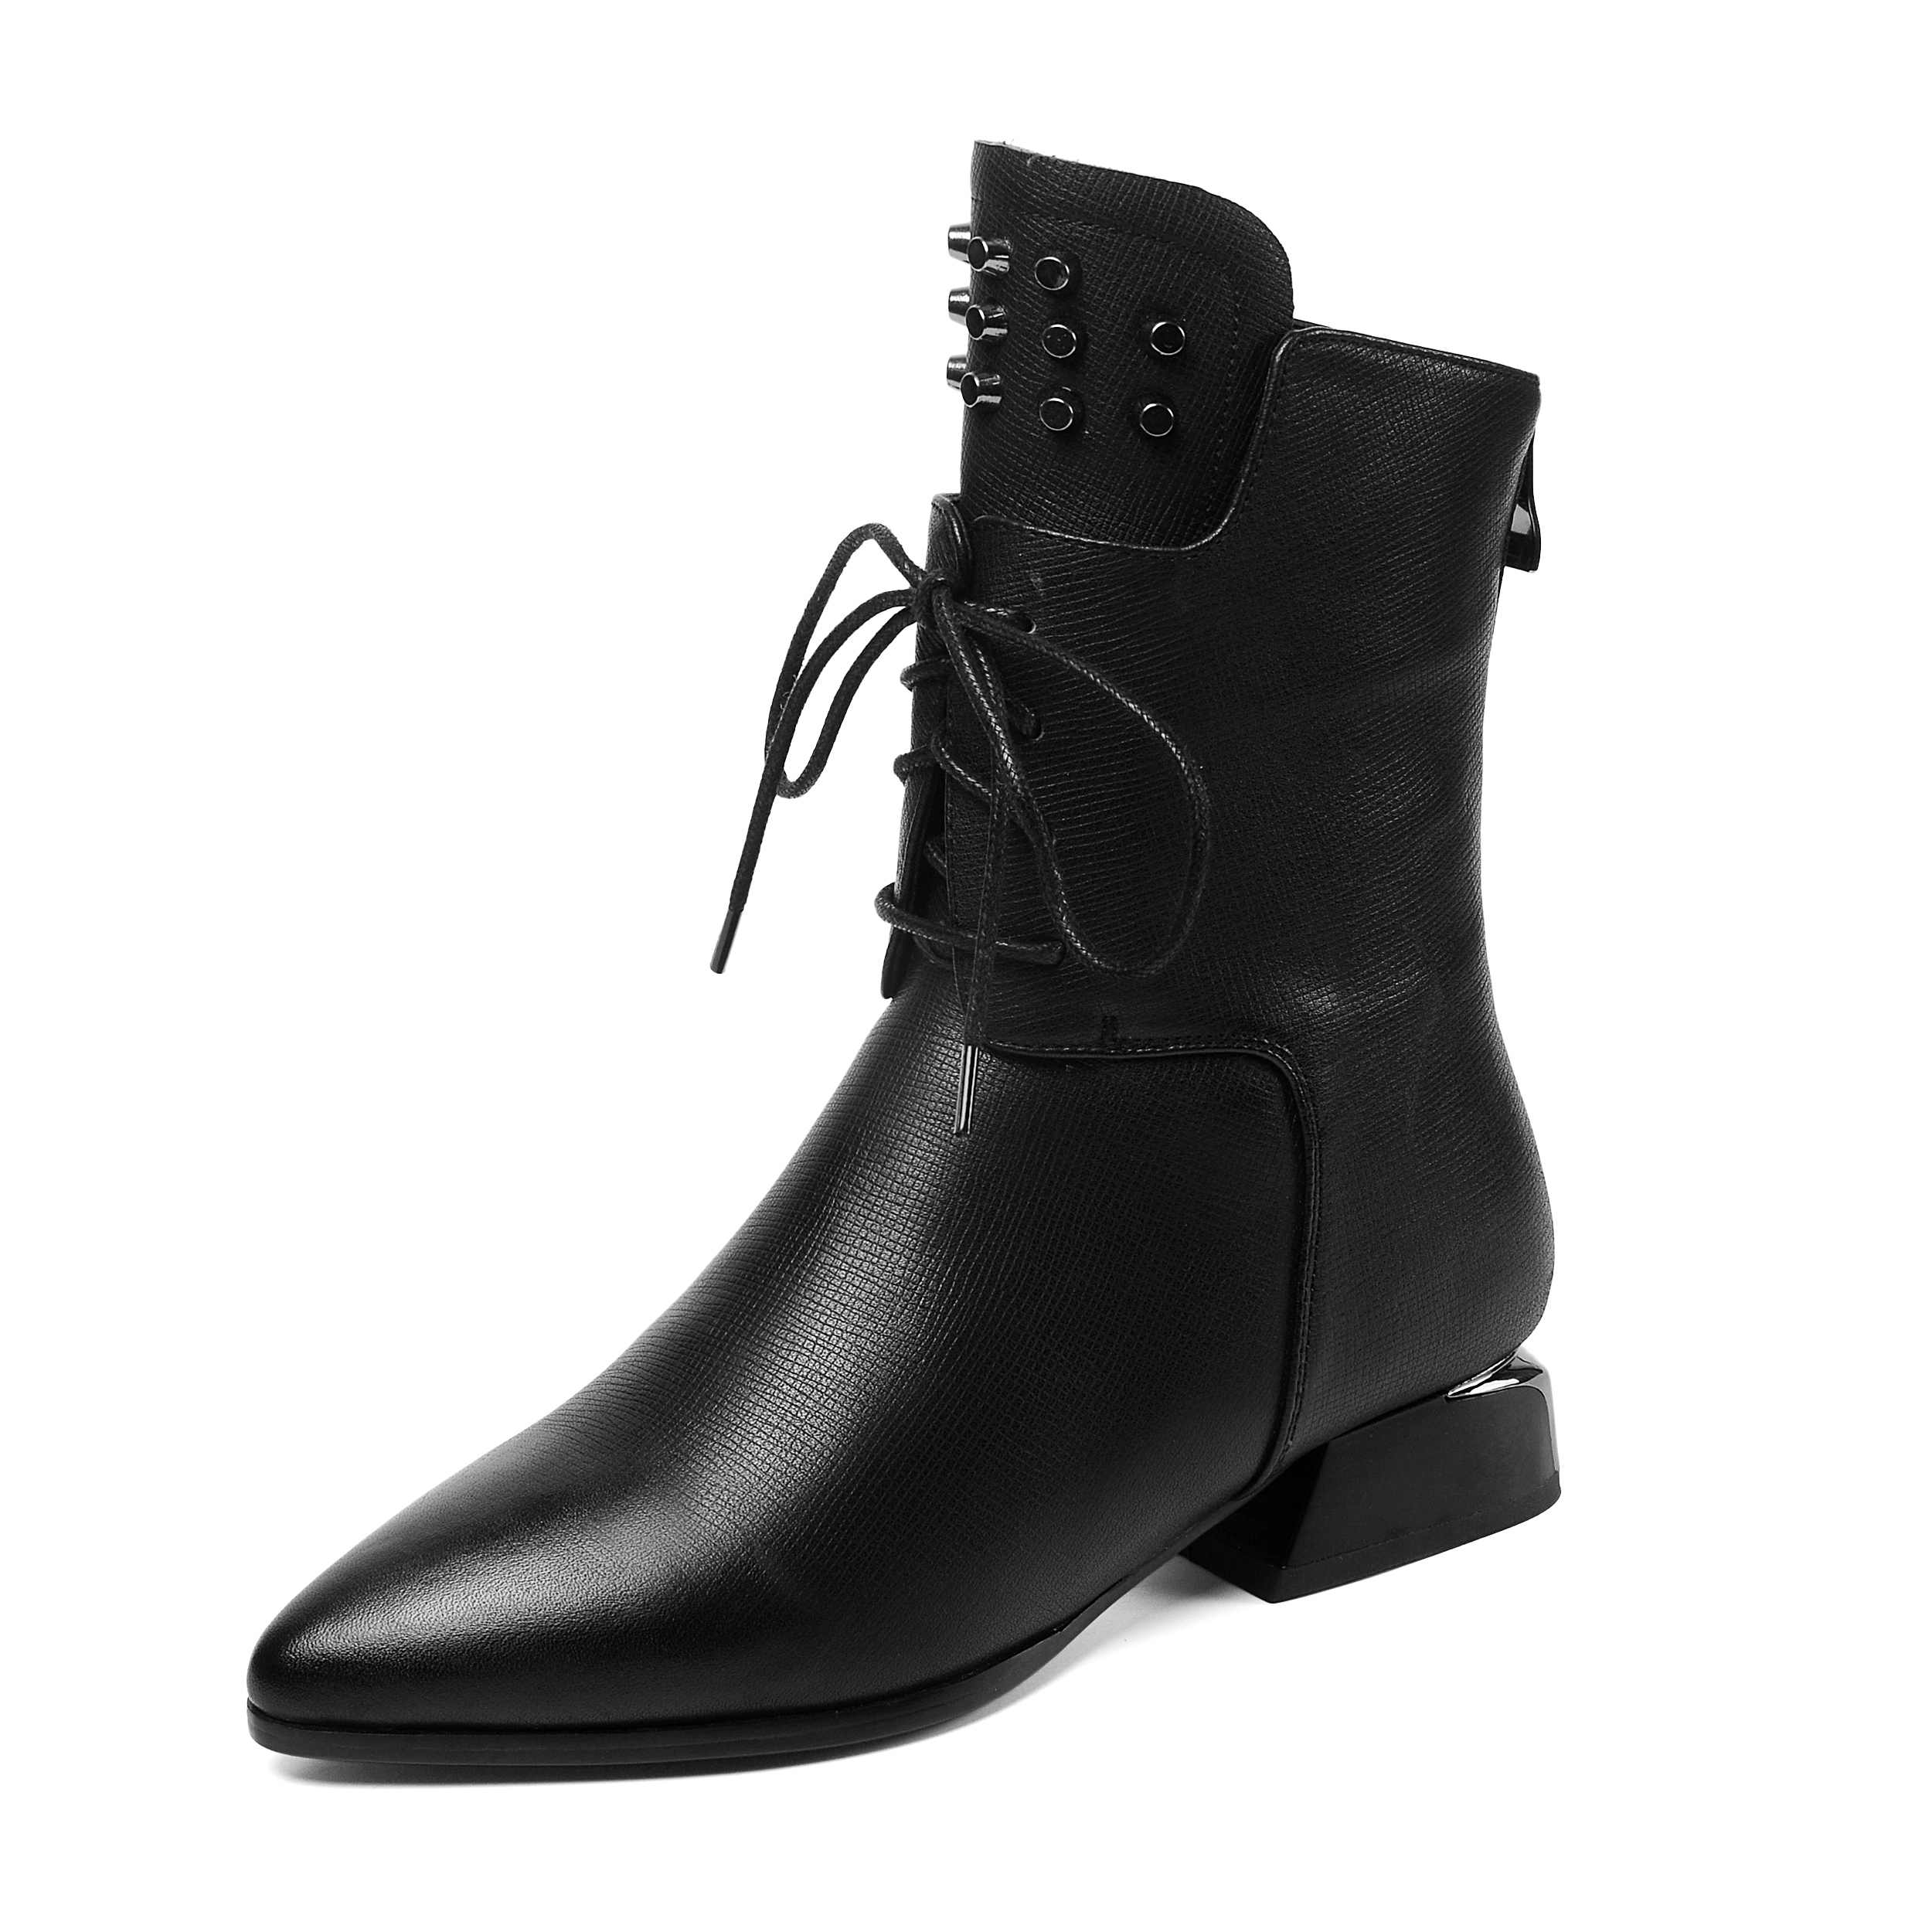 Image 2 - Krazing Pot solid rivets lace up genuine leather pointed toe med  heels mature women leisure fashion cozy warm mid calf boots L11Mid-Calf  Boots